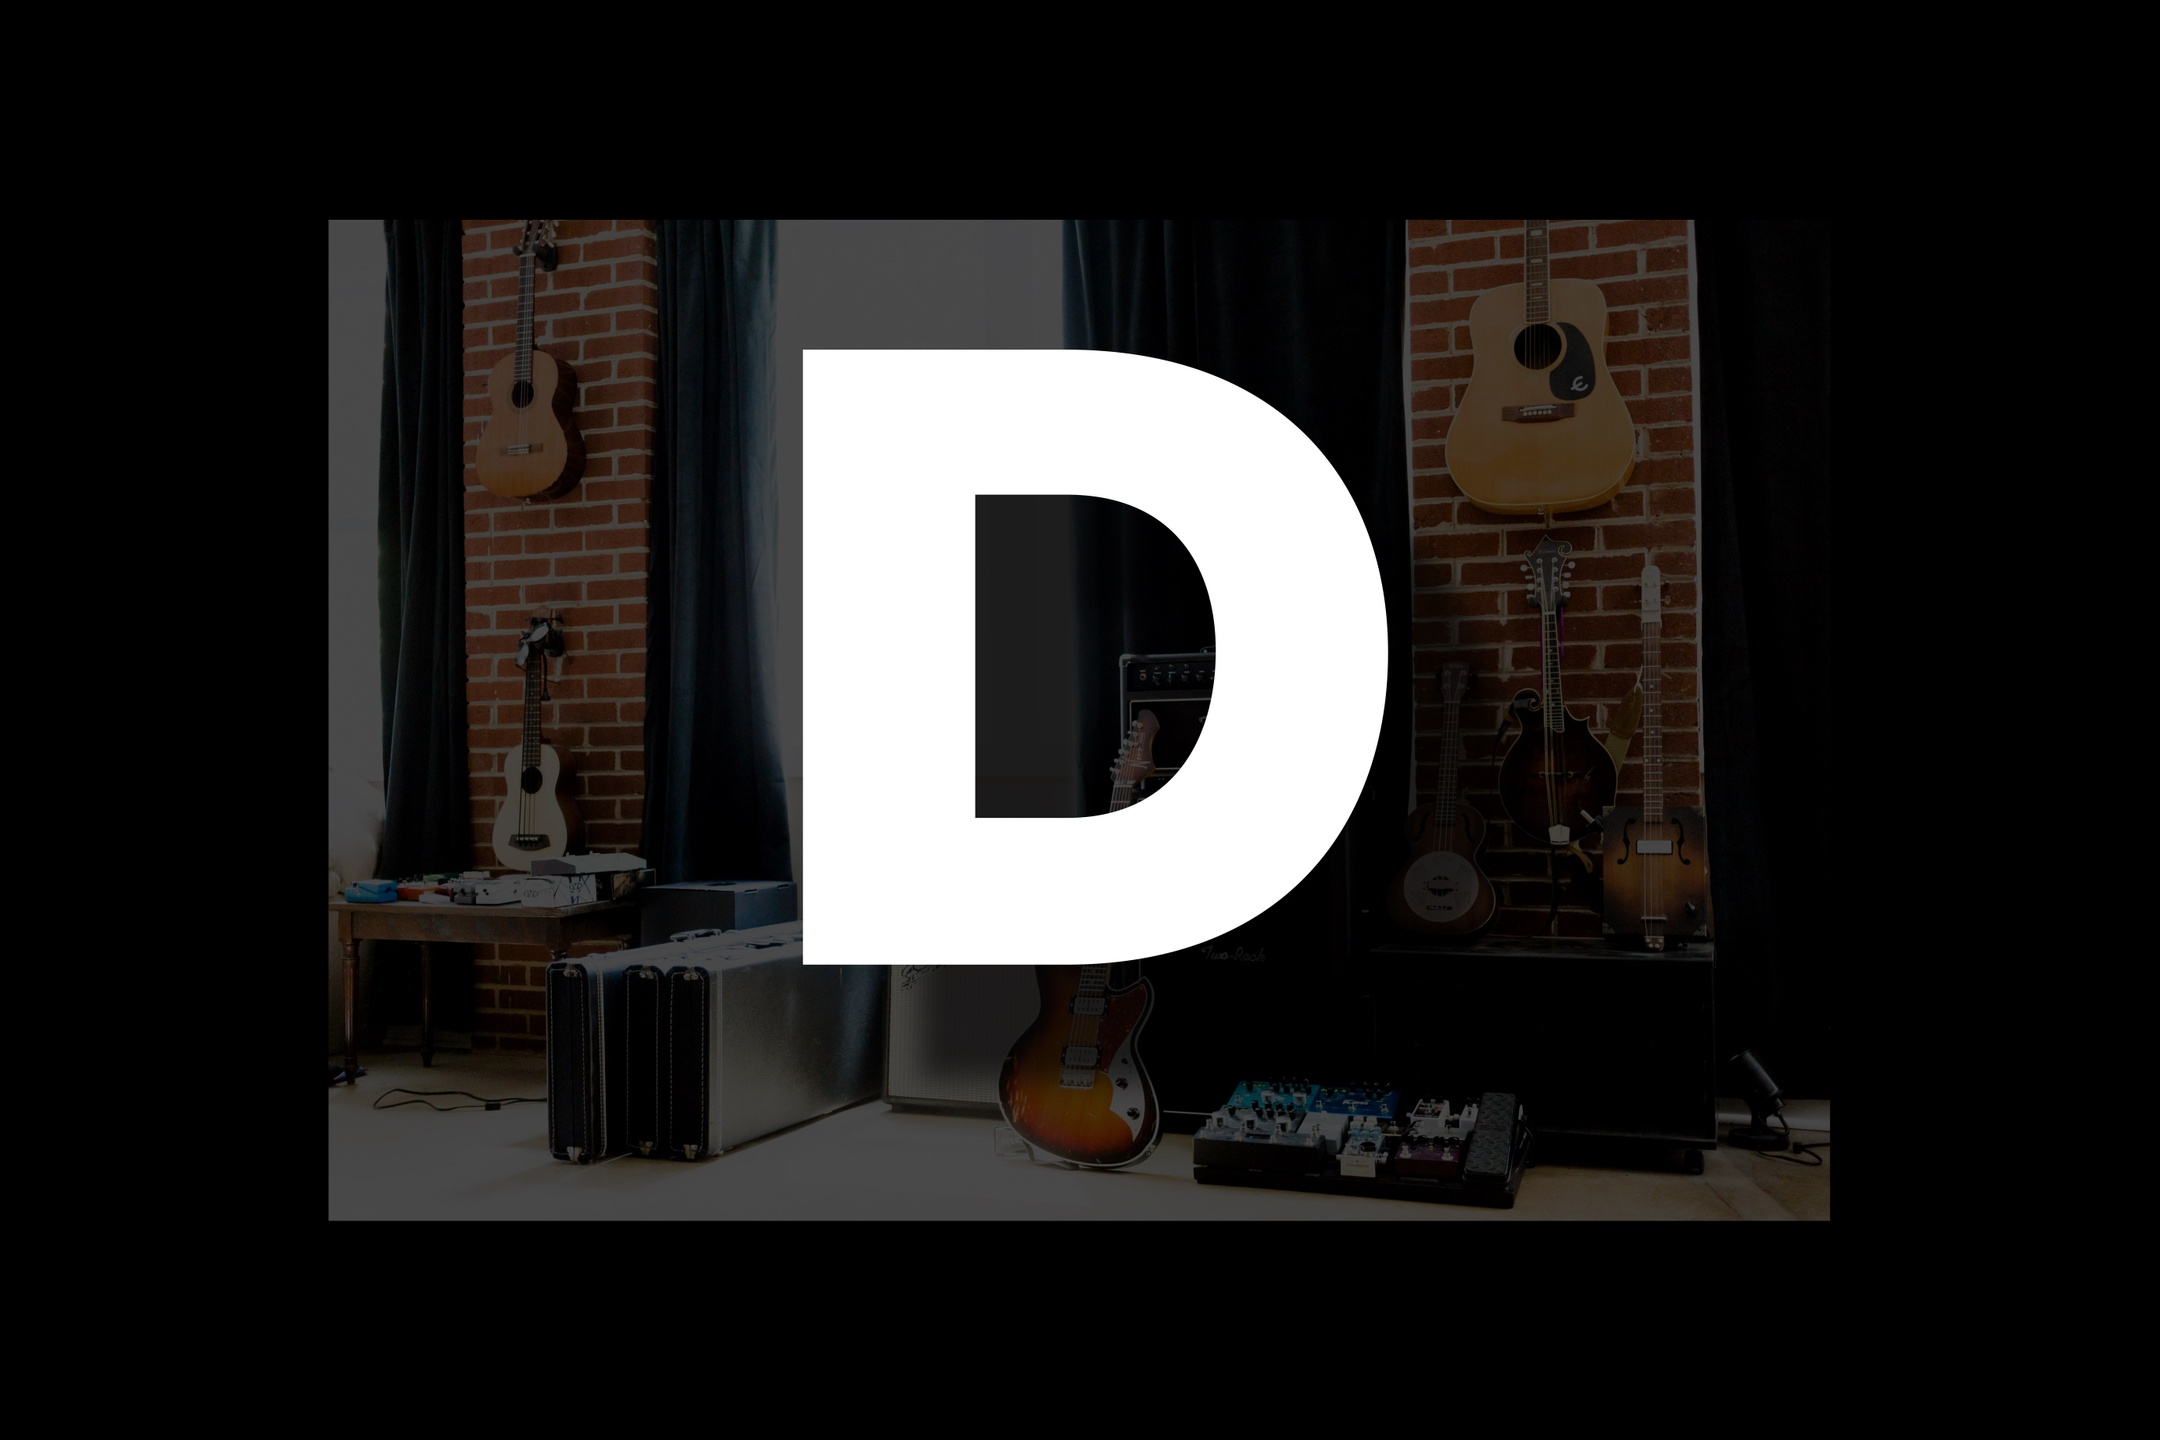 Glossary section containing music and guitar words that start with the letter D..